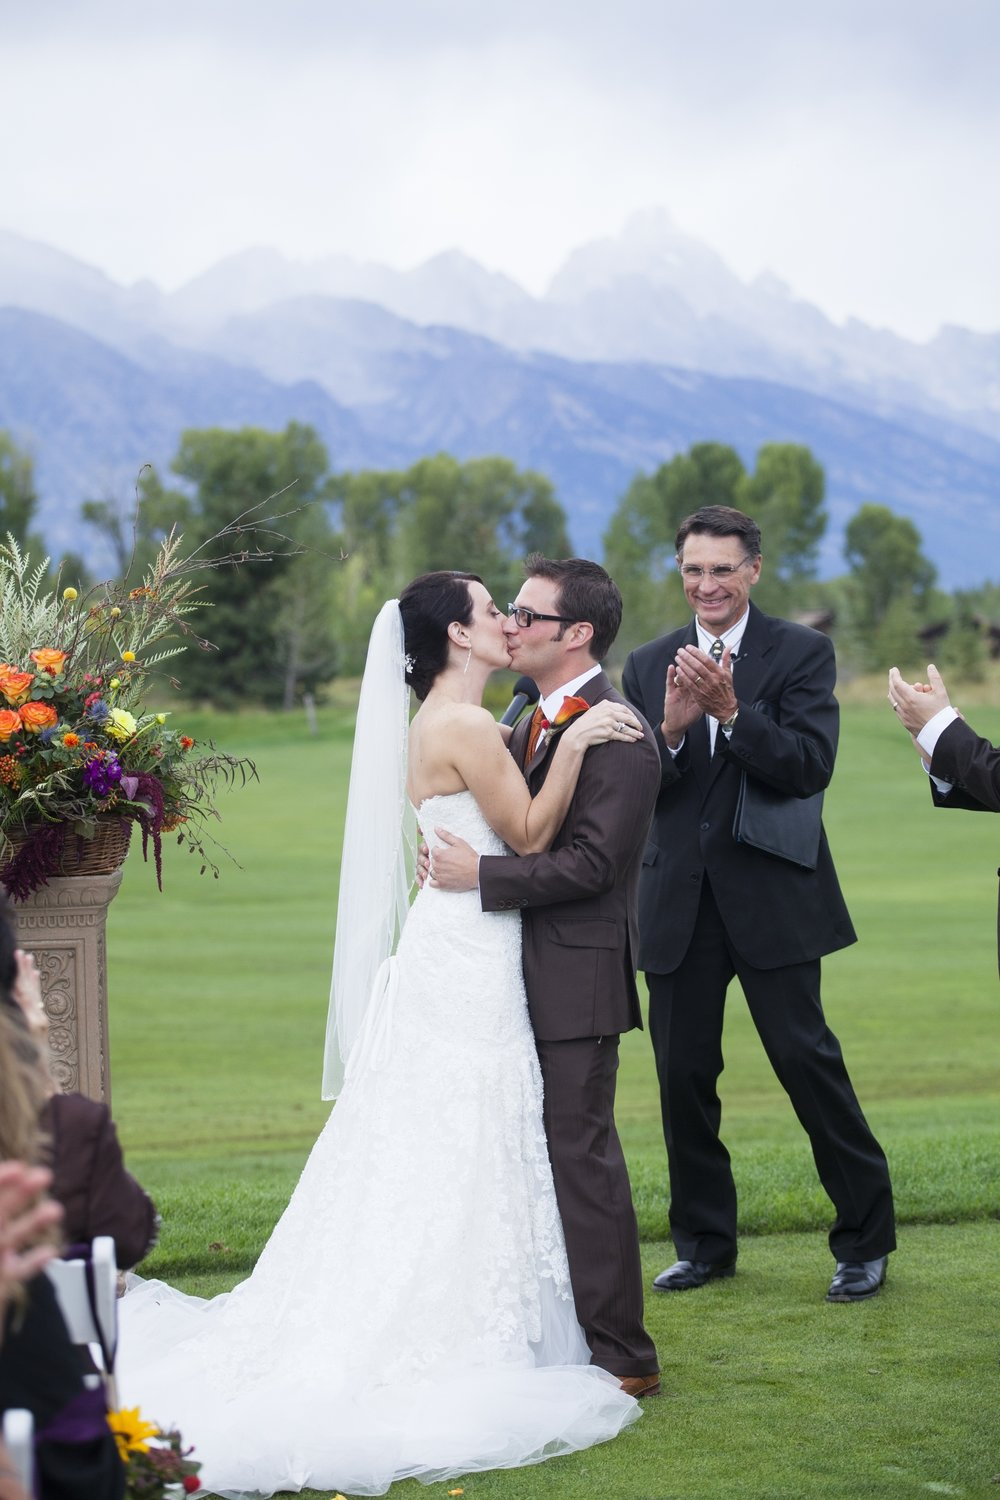 Harrison Wedding Jackson Hole 2013_1125.JPG